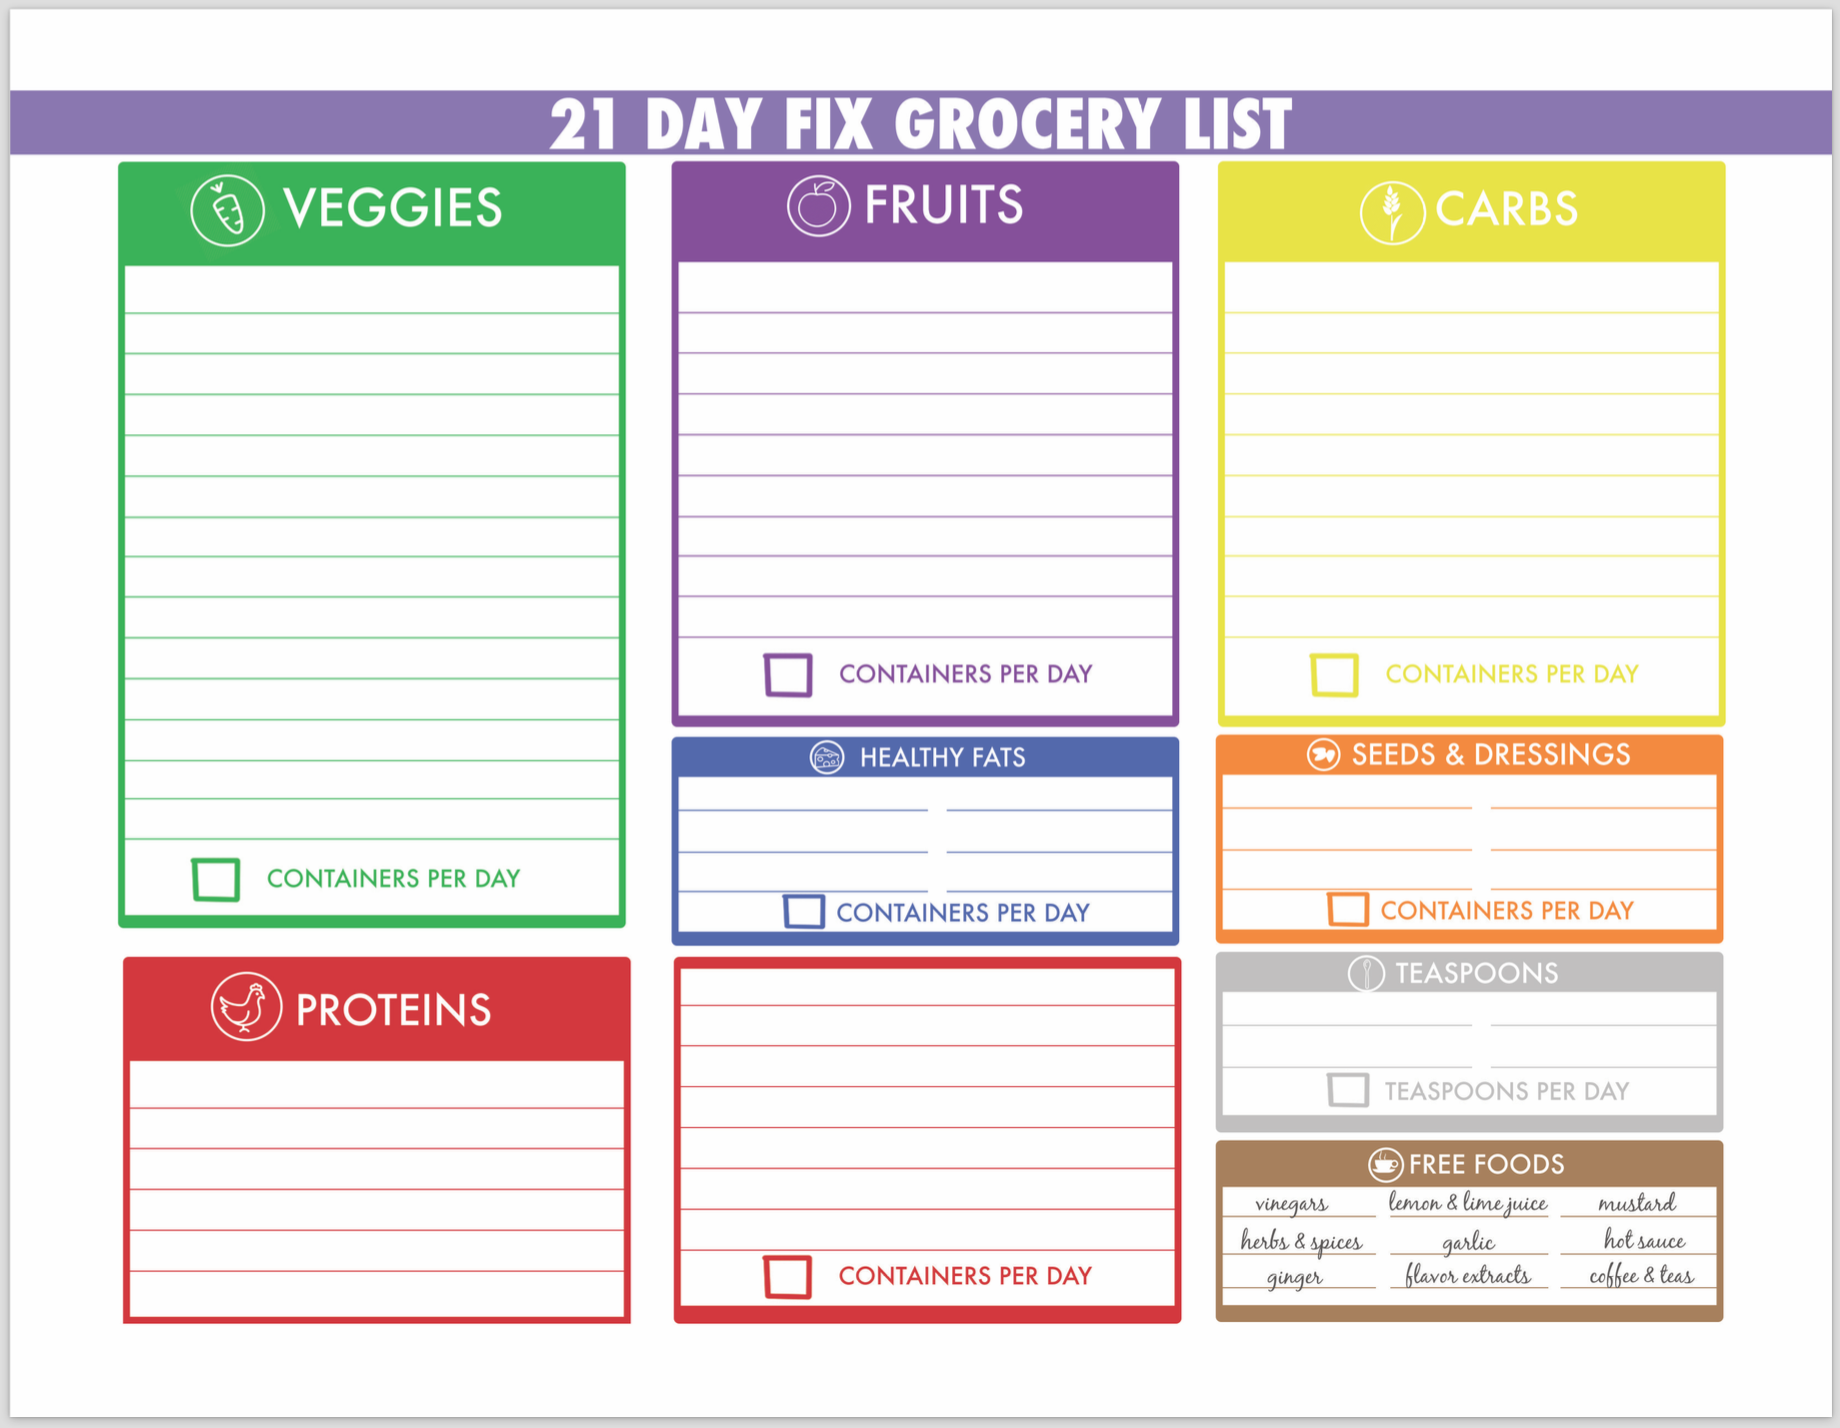 Blank Grocery List With Free Foods Written In